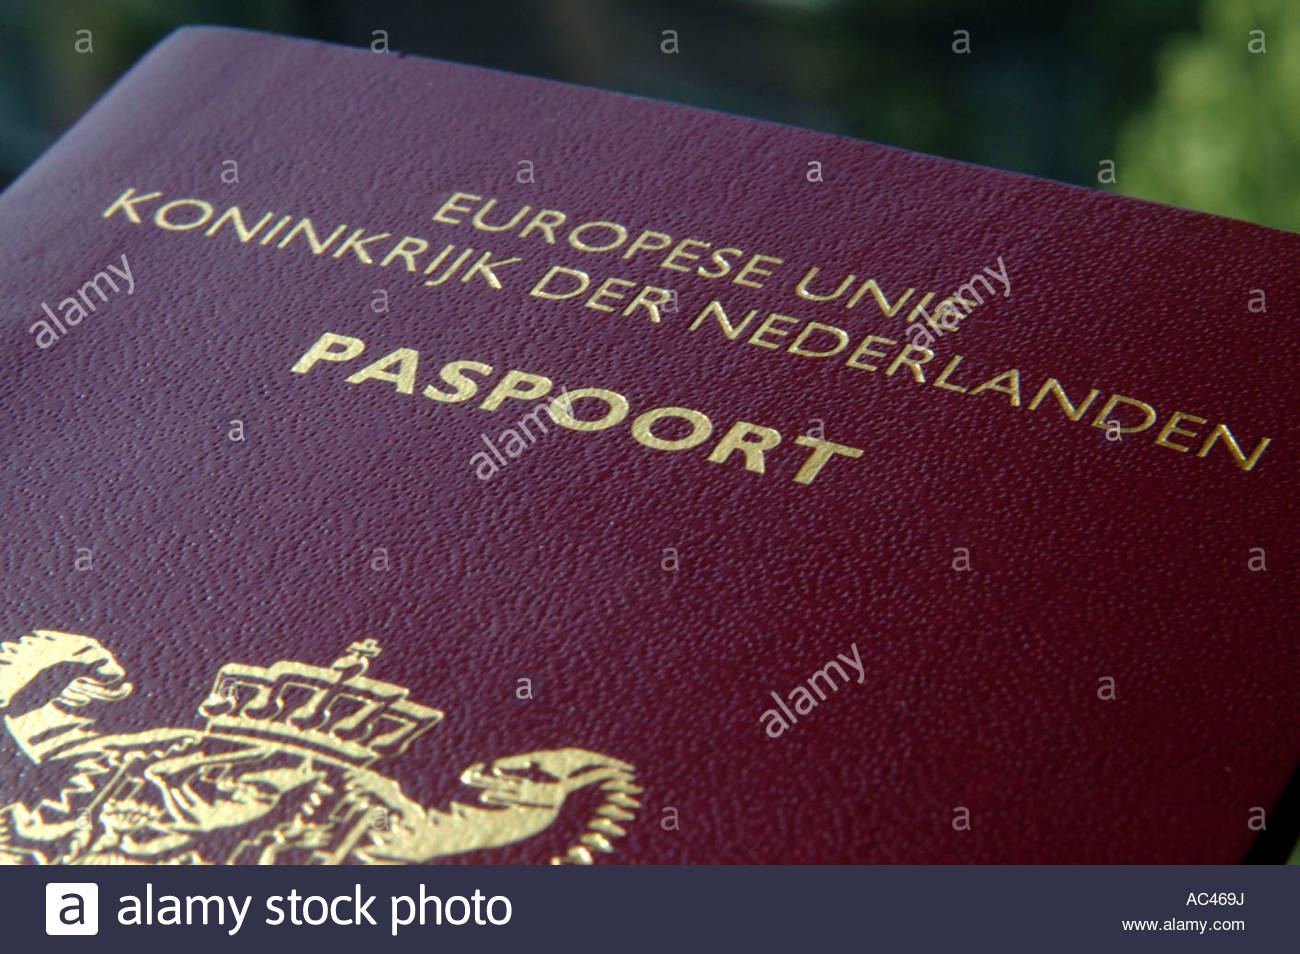 Dutch passport cover stock photo royalty free image 13035341 alamy dutch passport cover ccuart Choice Image